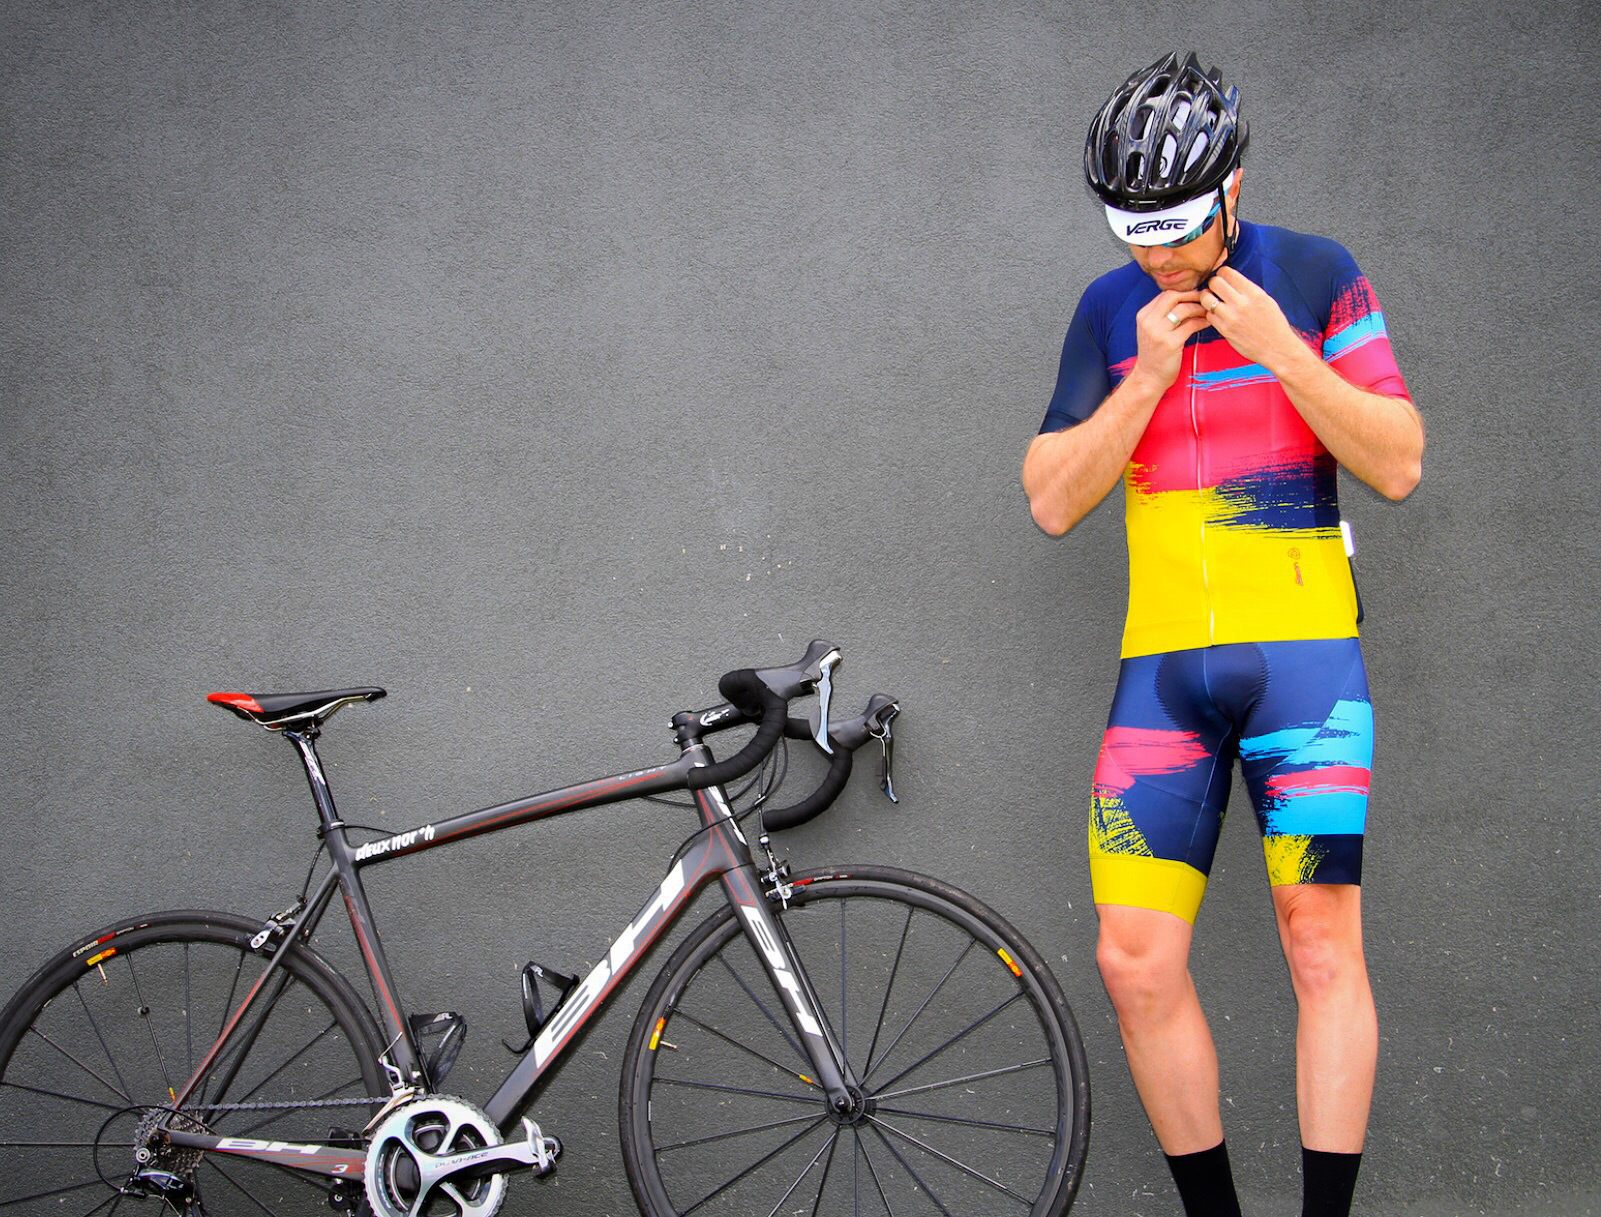 verge sport x created by south kit collaboration